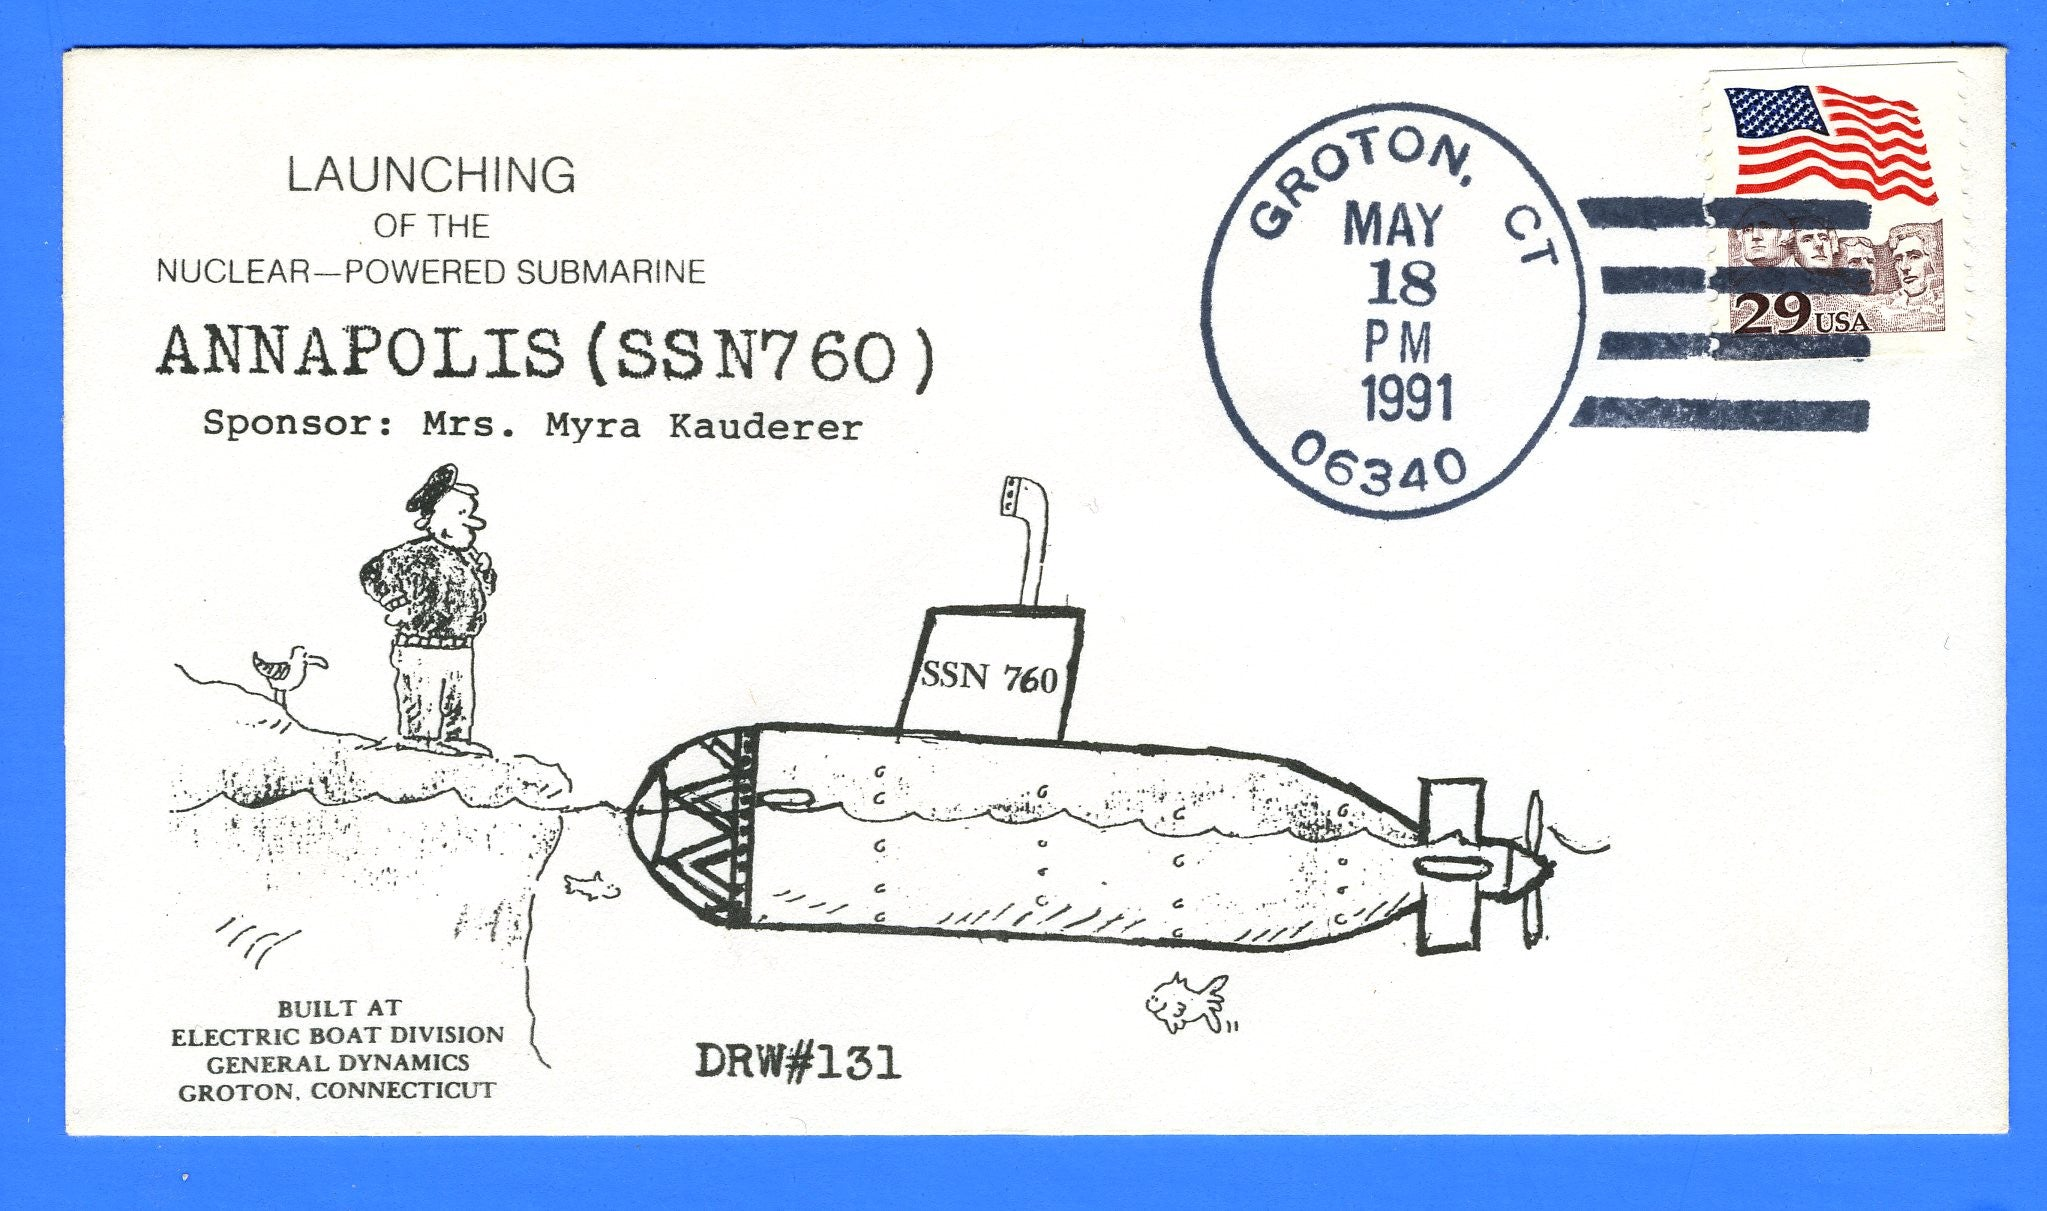 USS Annapolis SSN-760 Launched May 18, 1991 - DRW 131